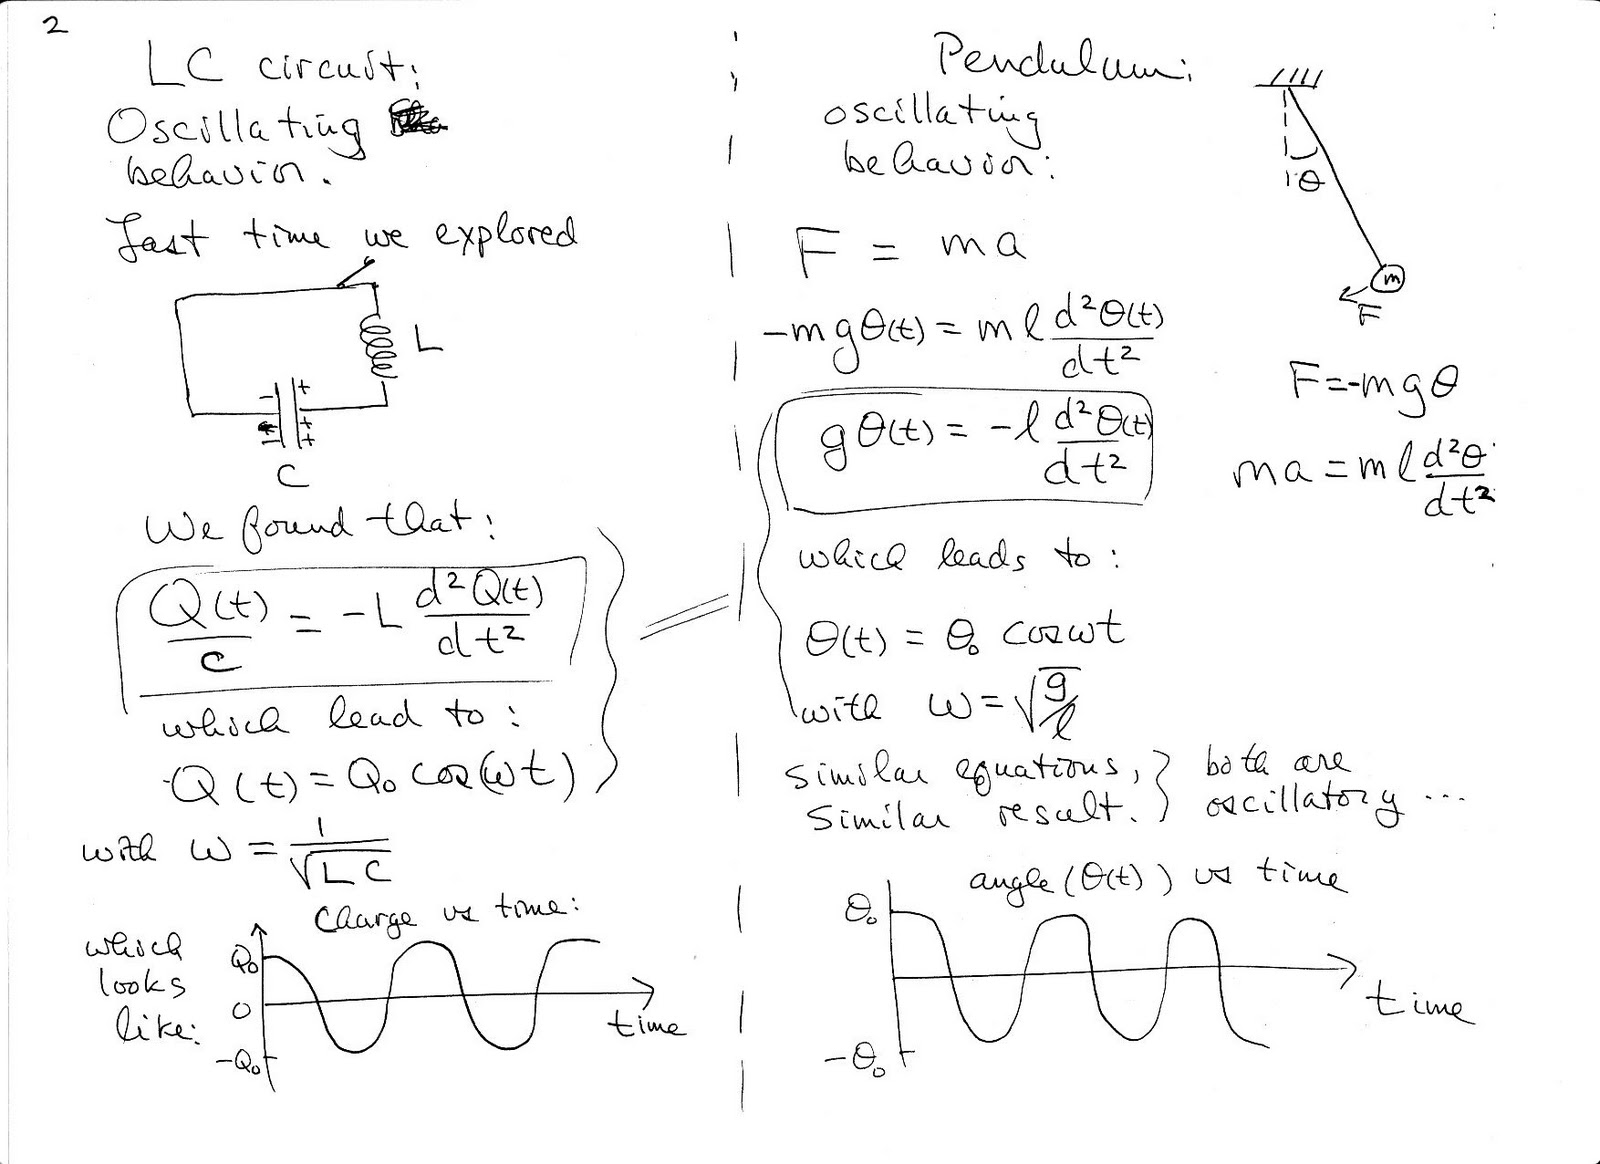 Lc Filter Circuit Equations How To Solve The Differential Equation Circuitlab Rlc Band Stop Physics C Fall Notes On Oscillating Circuits